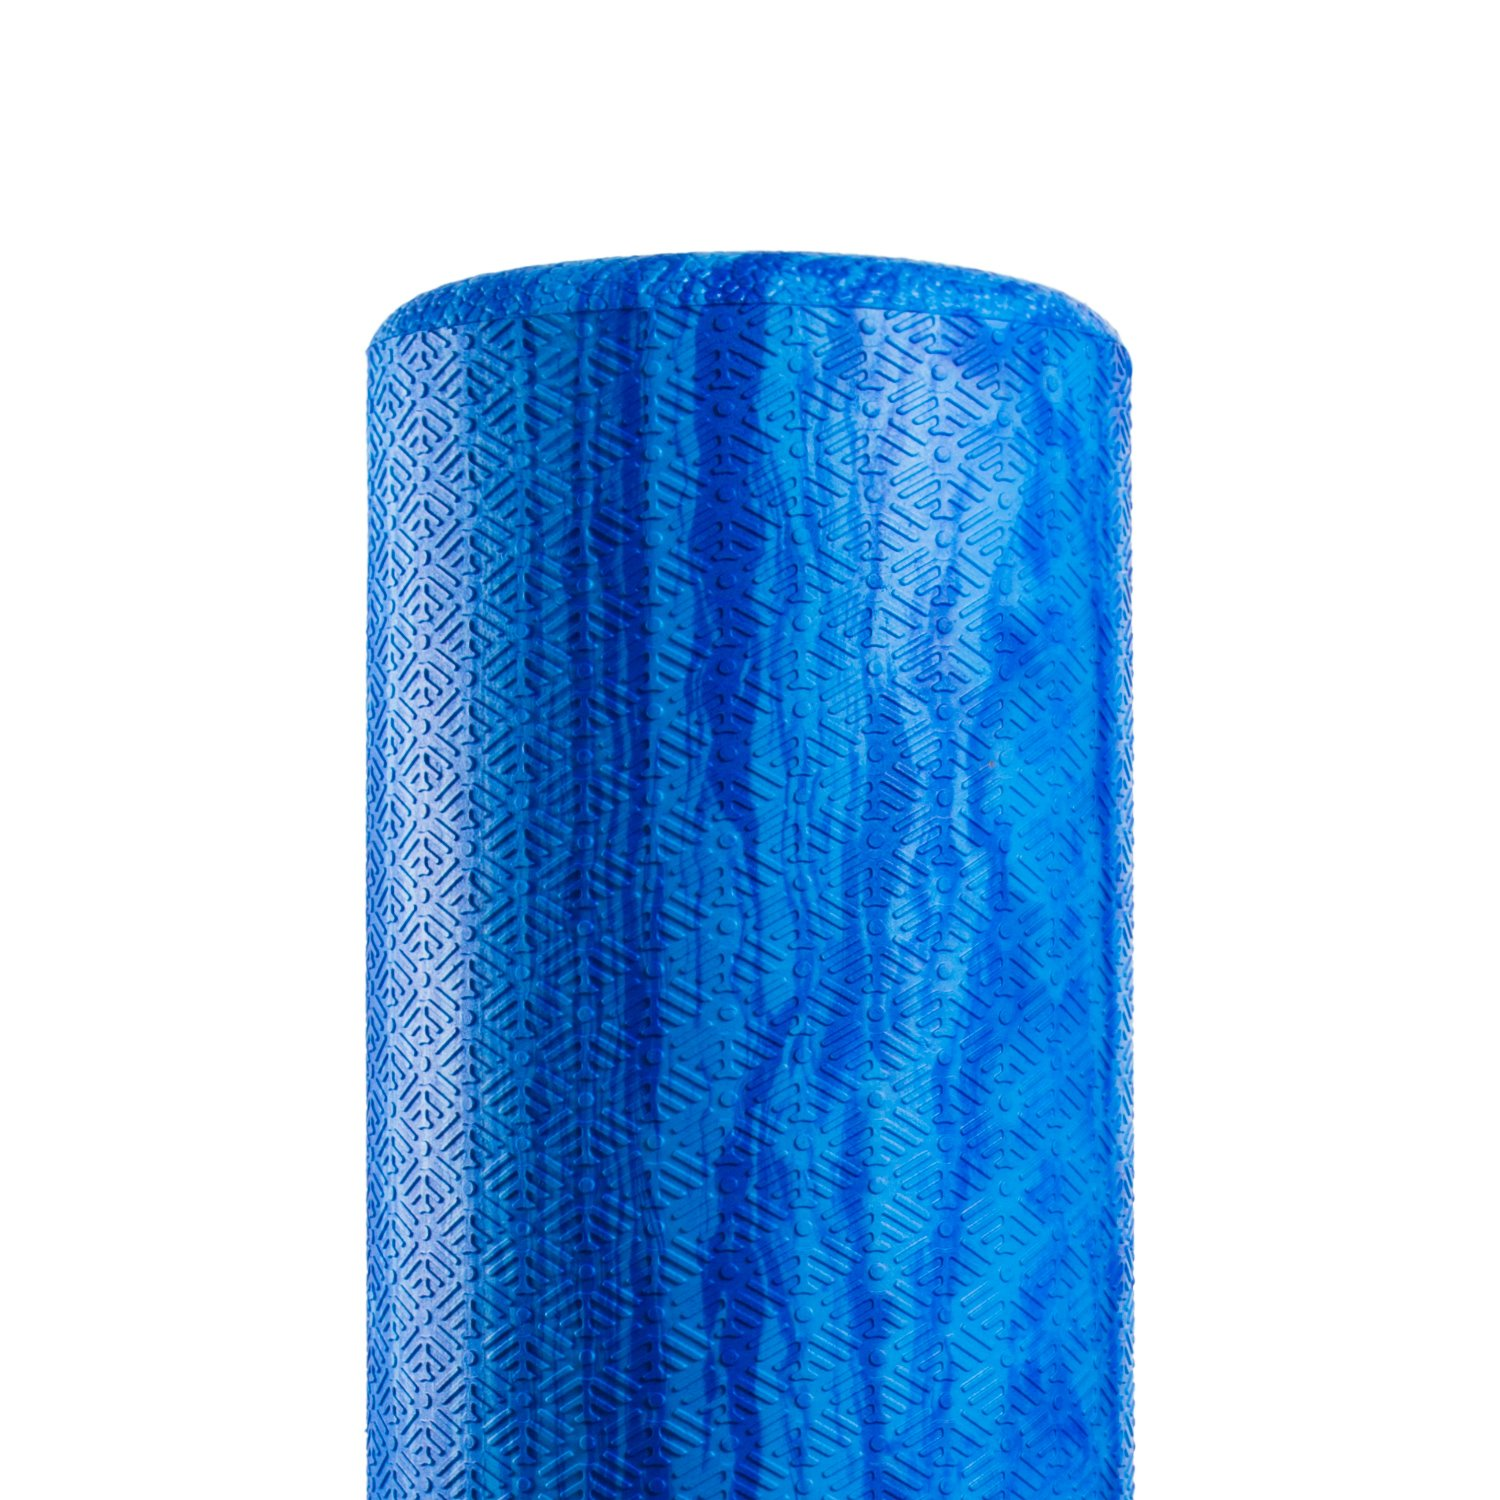 OPTP PRO-ROLLER Soft Density Foam Roller - Durable Roller